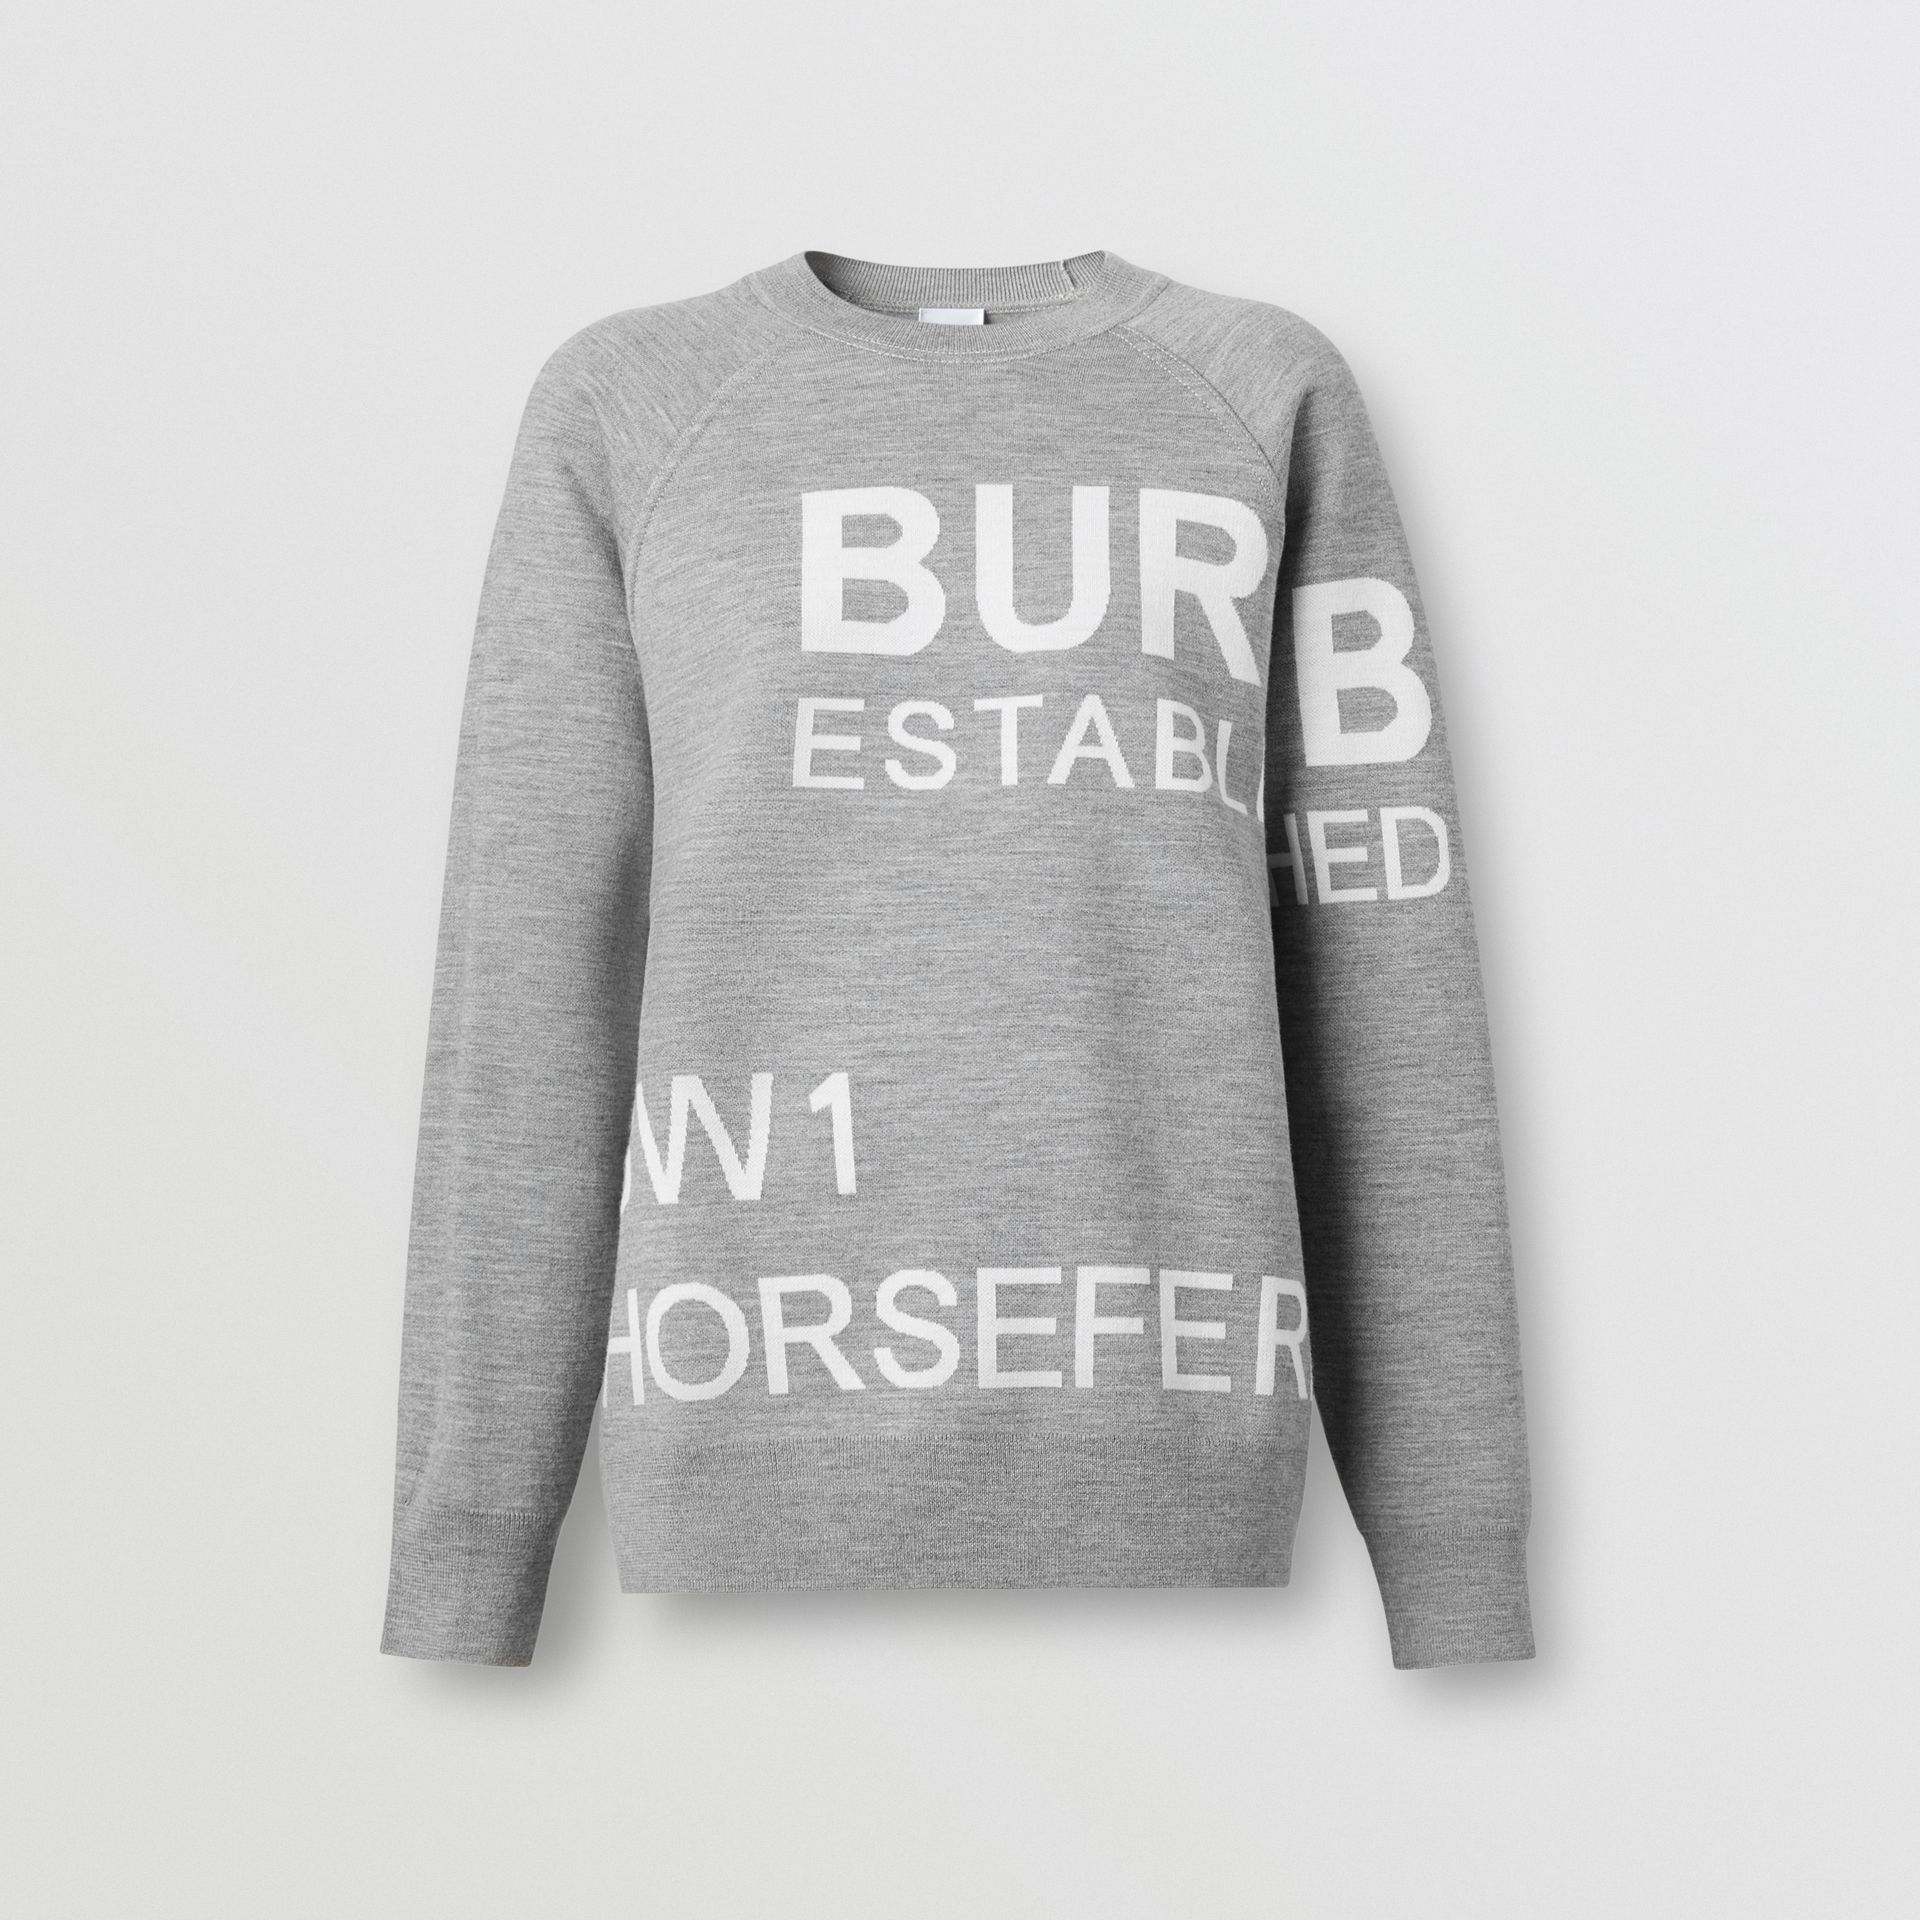 Horseferry Merino Wool Blend Jacquard Sweater in Grey Melange - Women | Burberry United Kingdom - gallery image 3